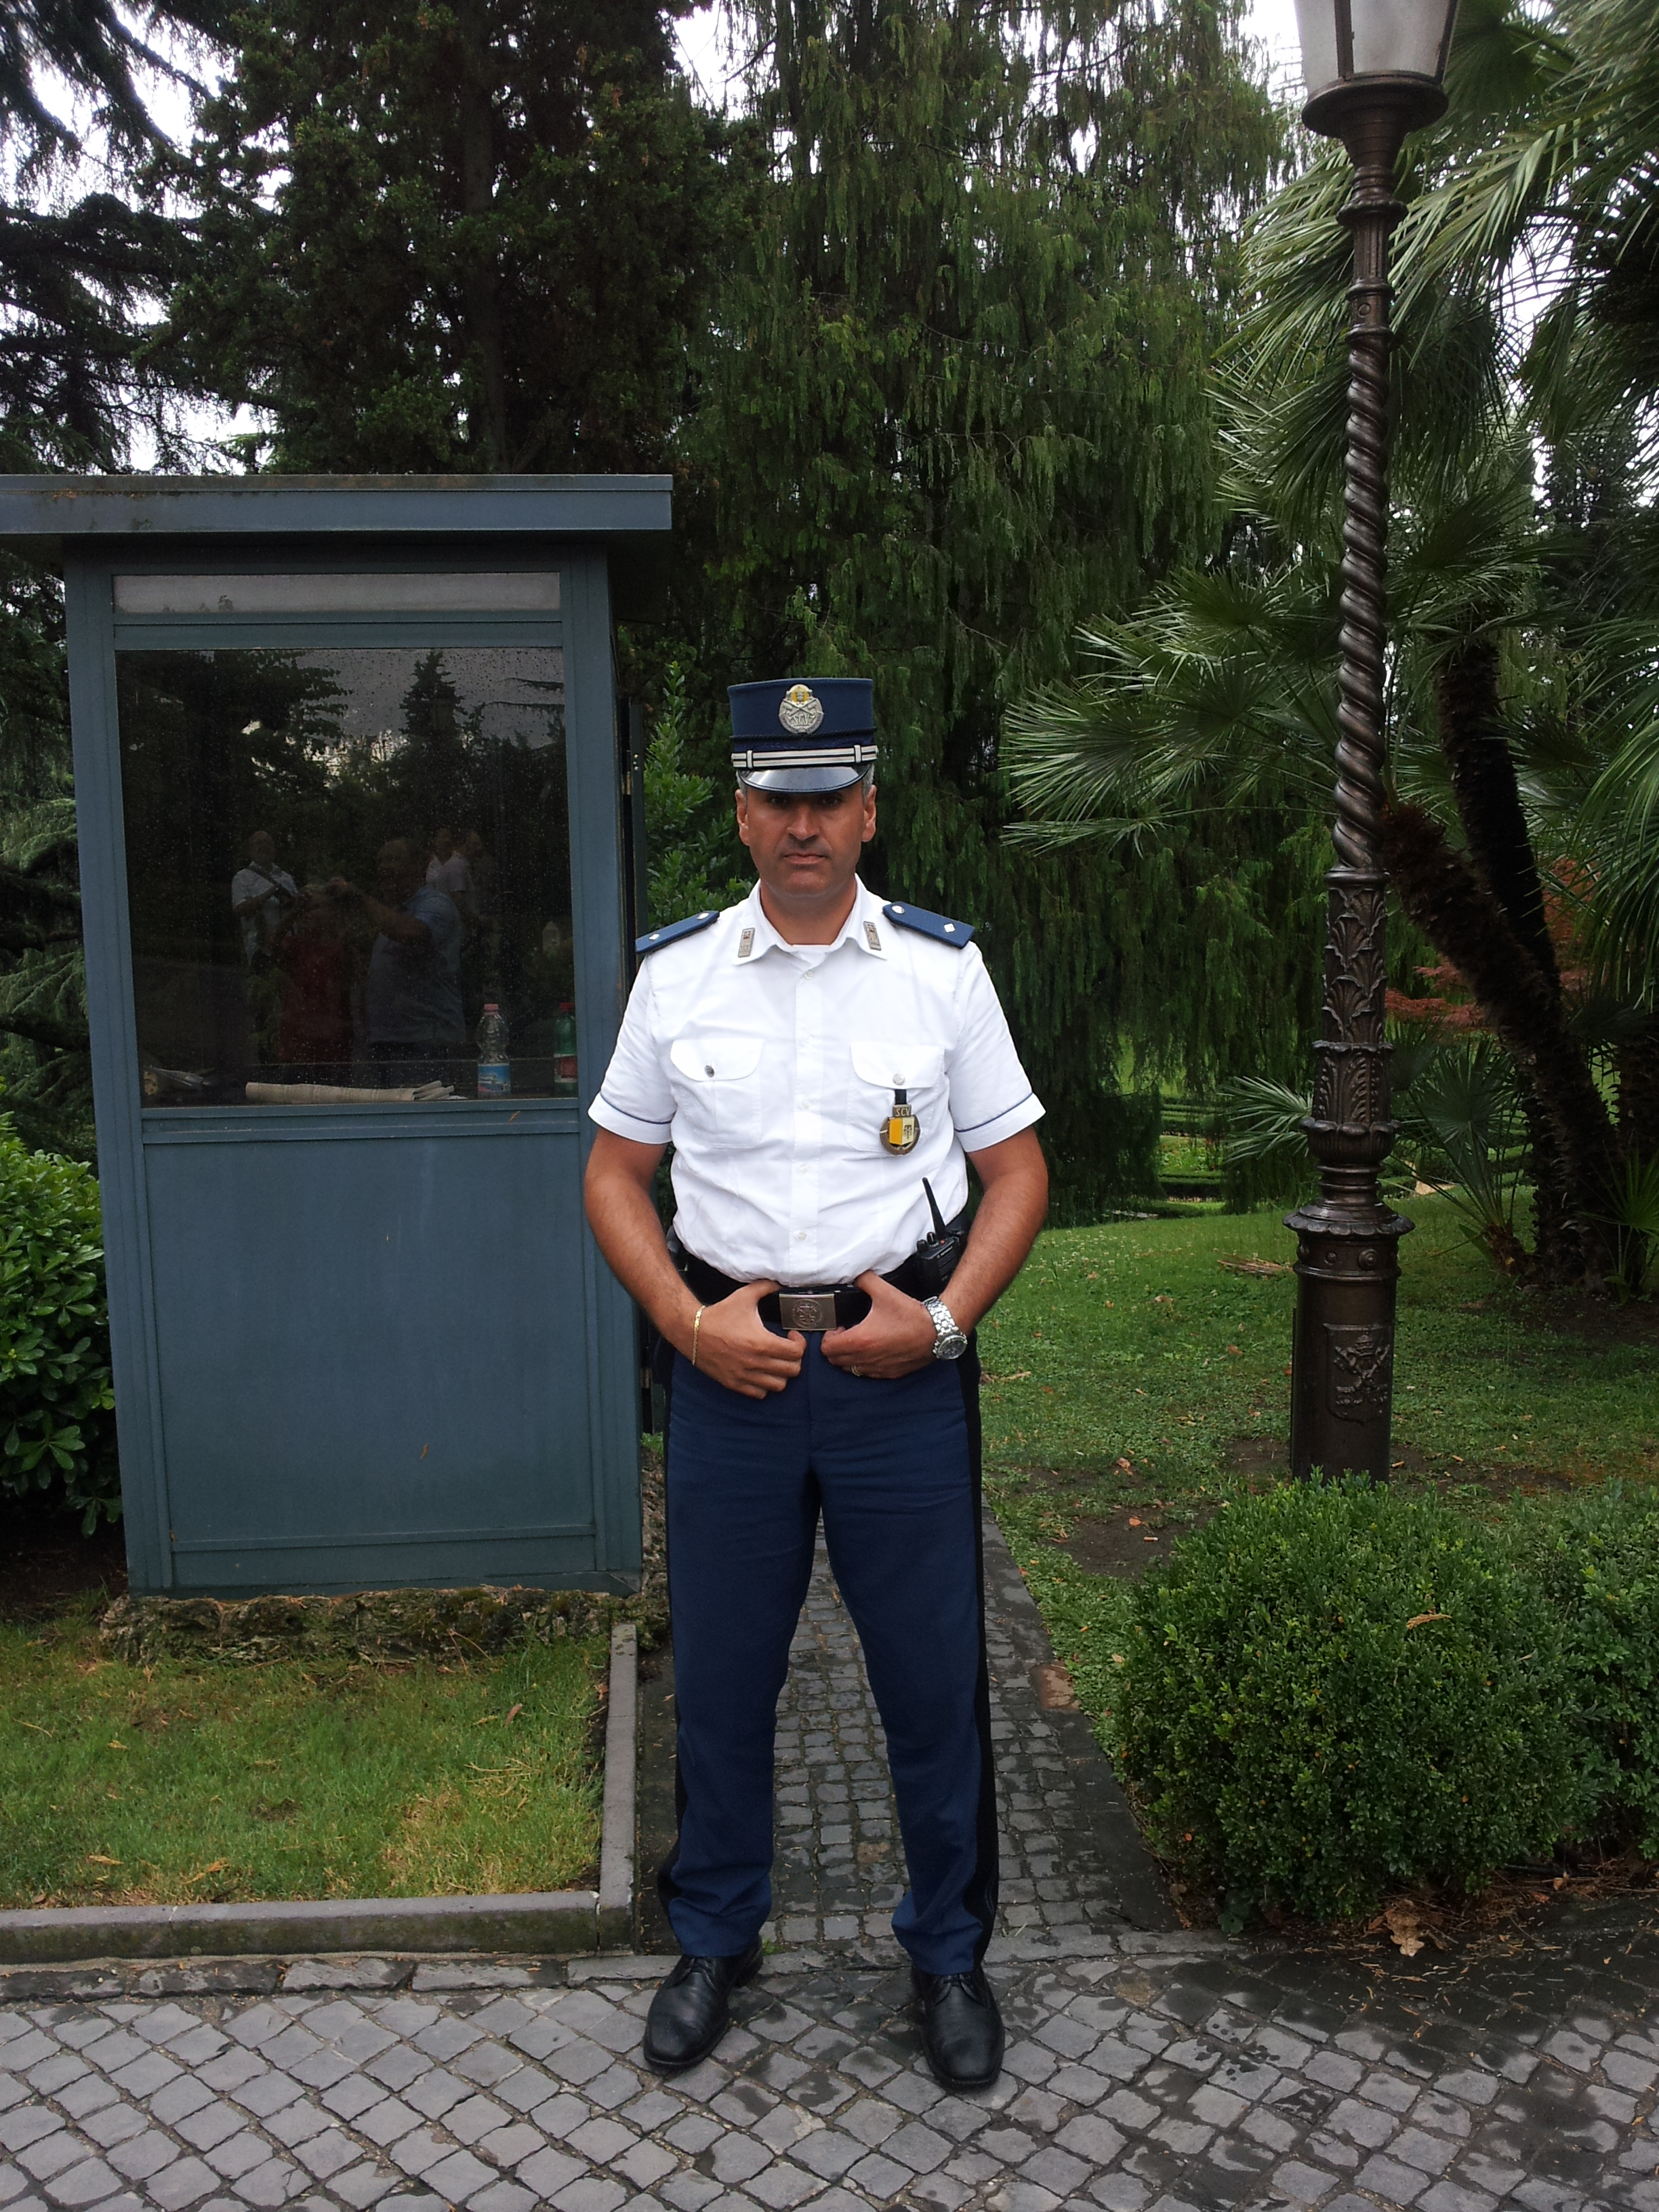 Gendarmerie_Vatican_City_July_2011.jpg